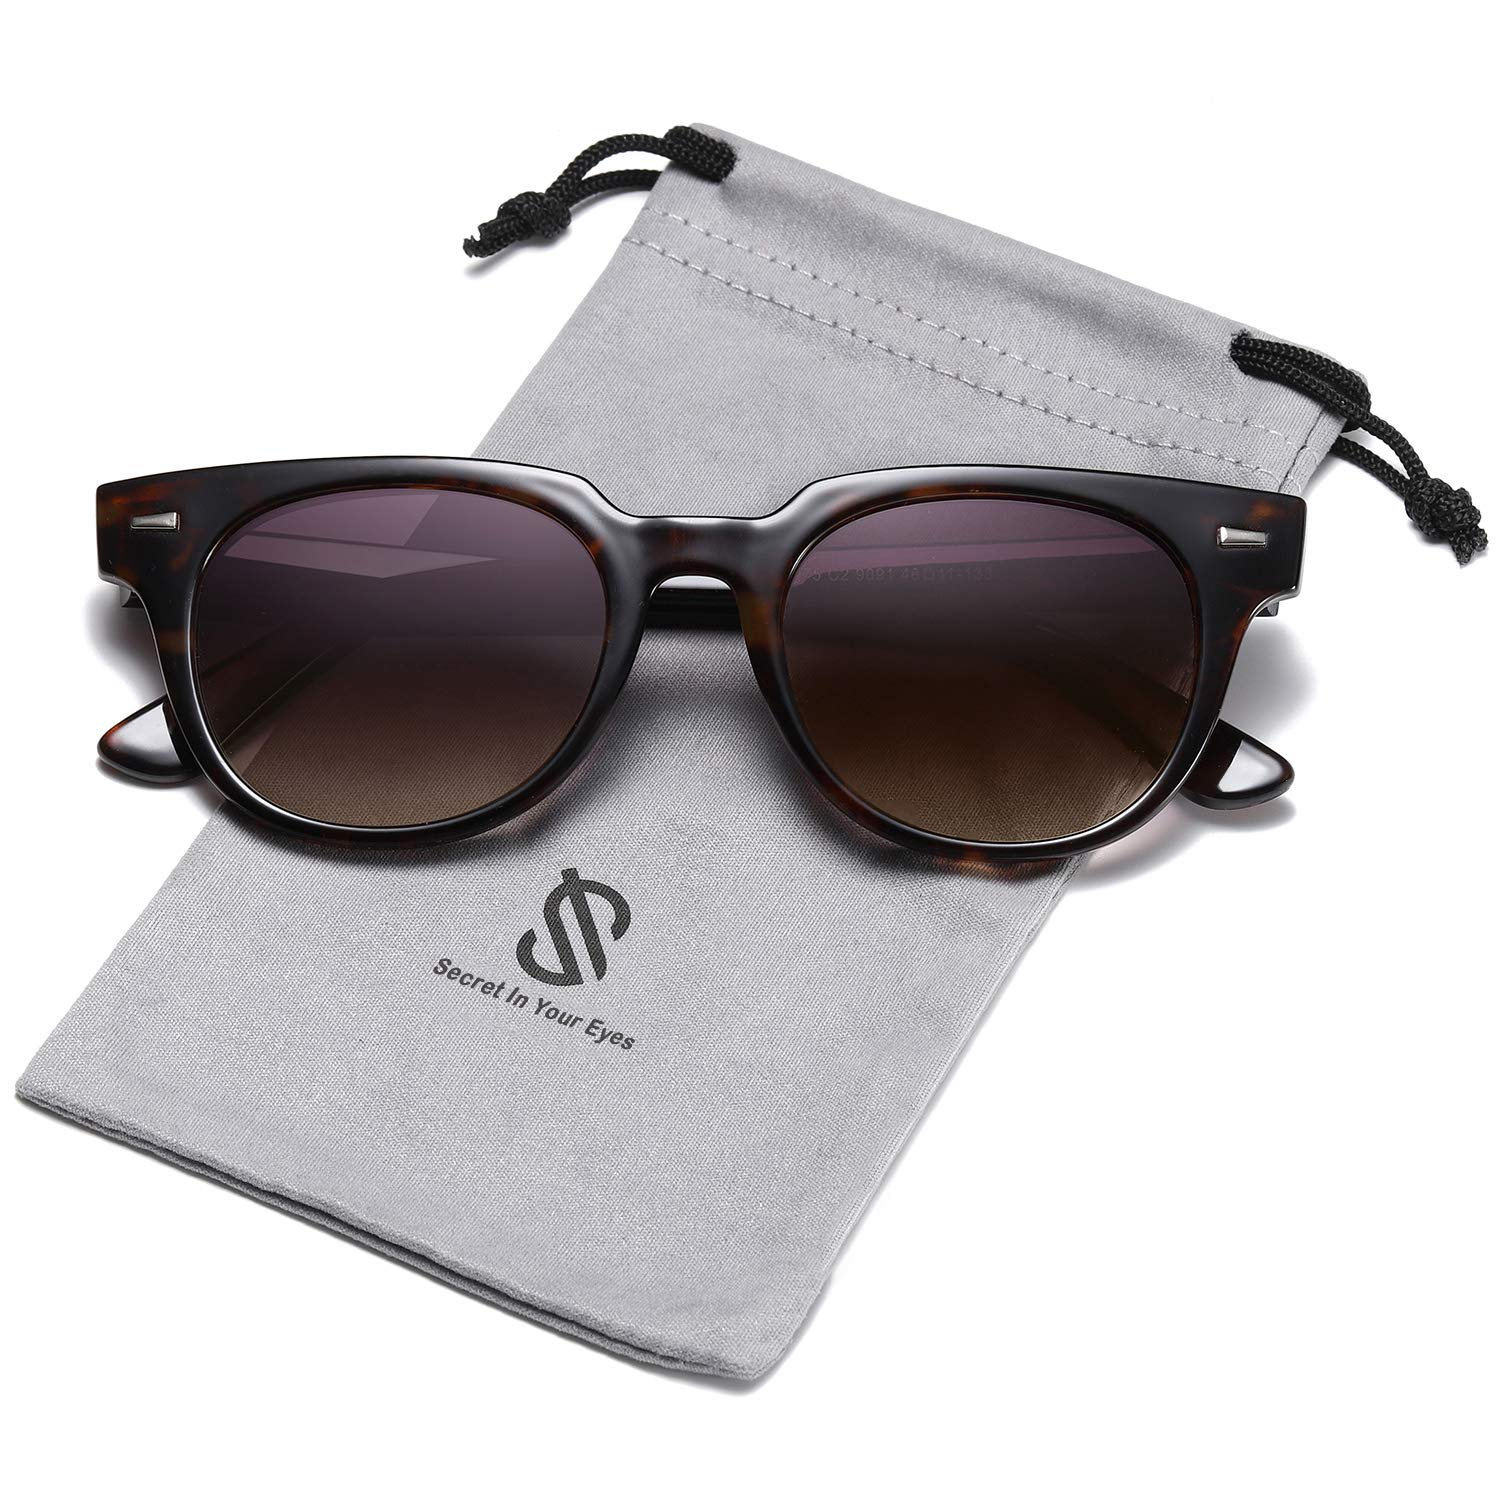 SOJOS Square Polarized Sunglasses for Men and Women MEMORIES SJ2075 with Tortoise Frame/Grey&Brown Polarized Lens by SOJOS